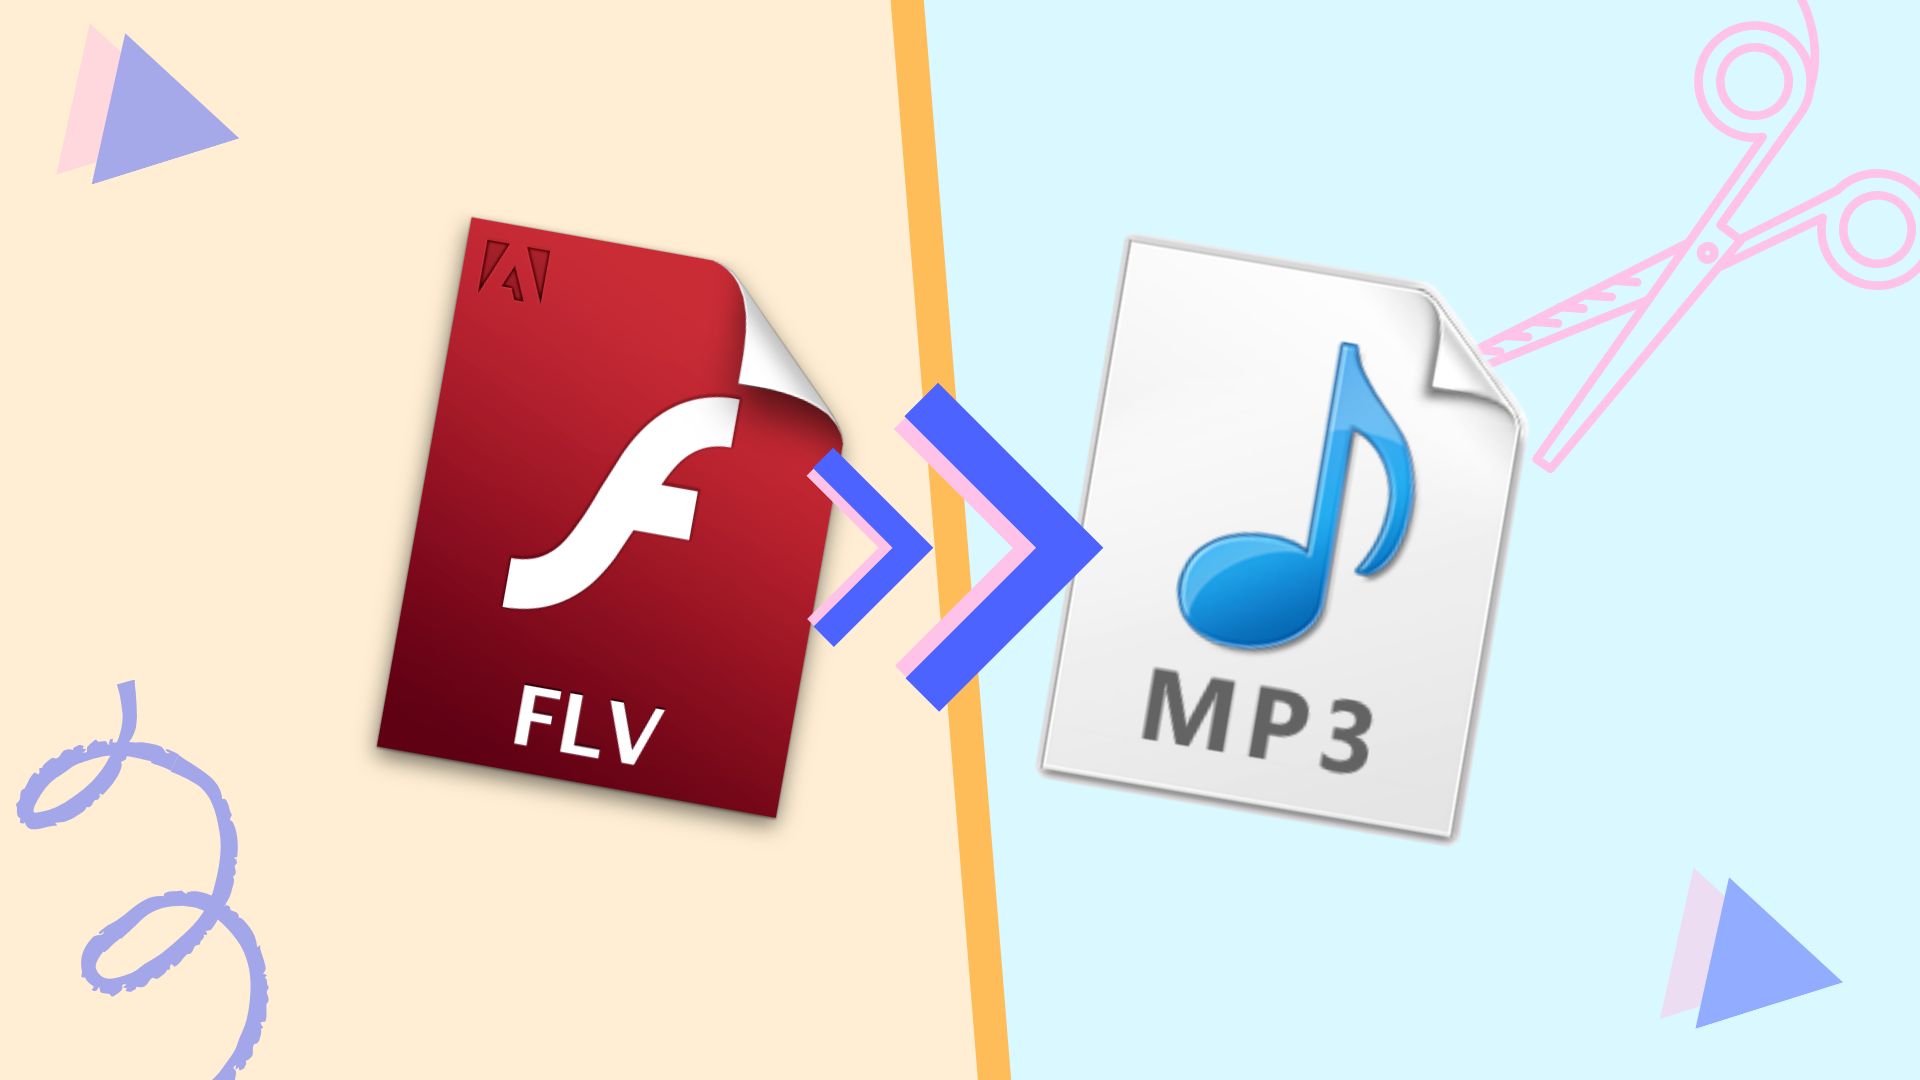 How to Convert FLV Files to MP3 Online